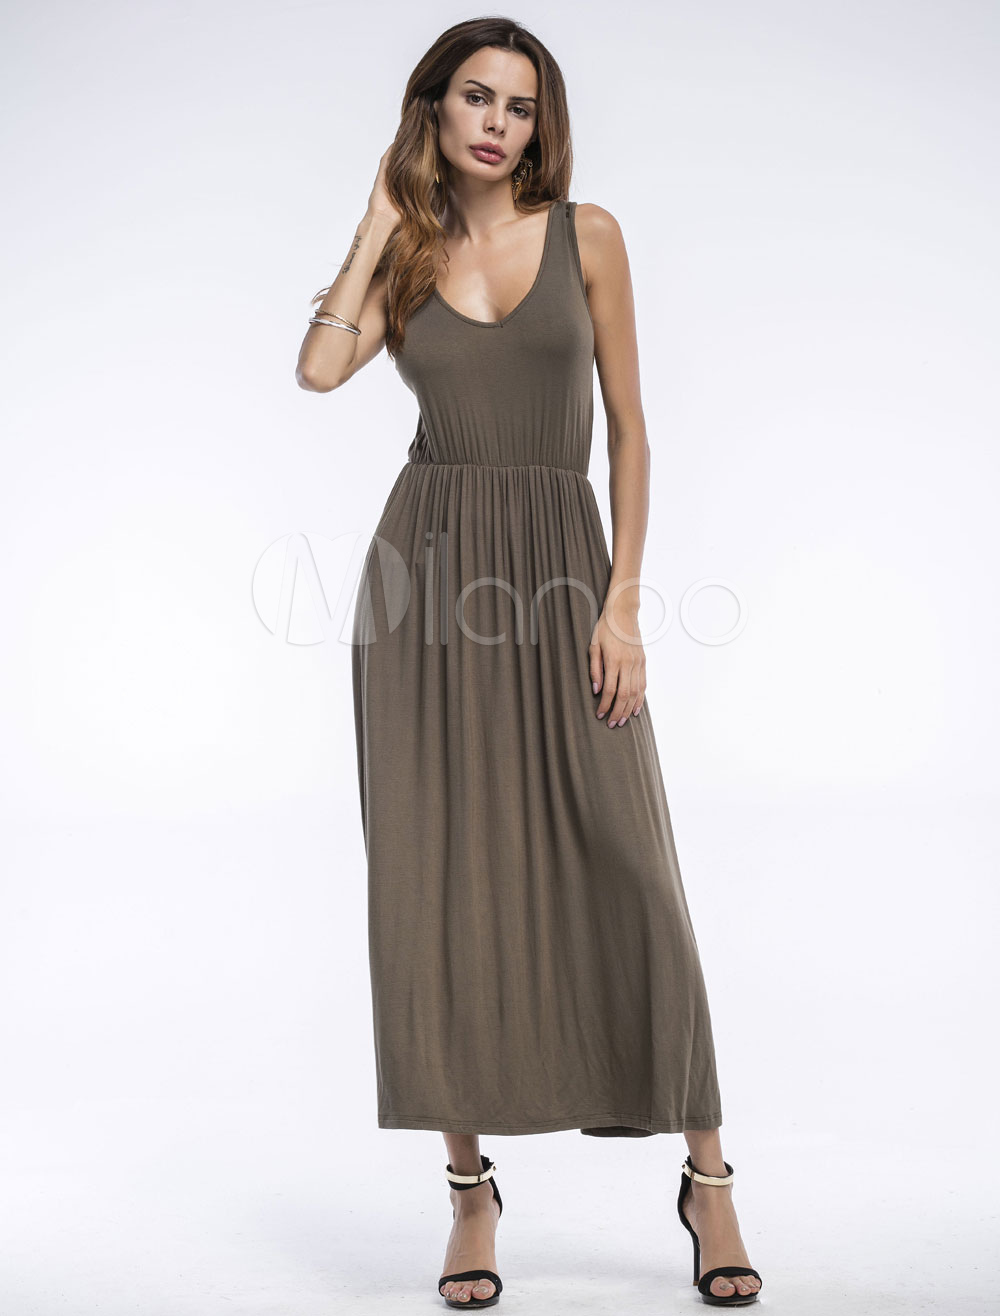 Buy Khaki Maxi Dress U Neck Sleeveless Pleated Cotton Long Dress For Women for $19.48 in Milanoo store